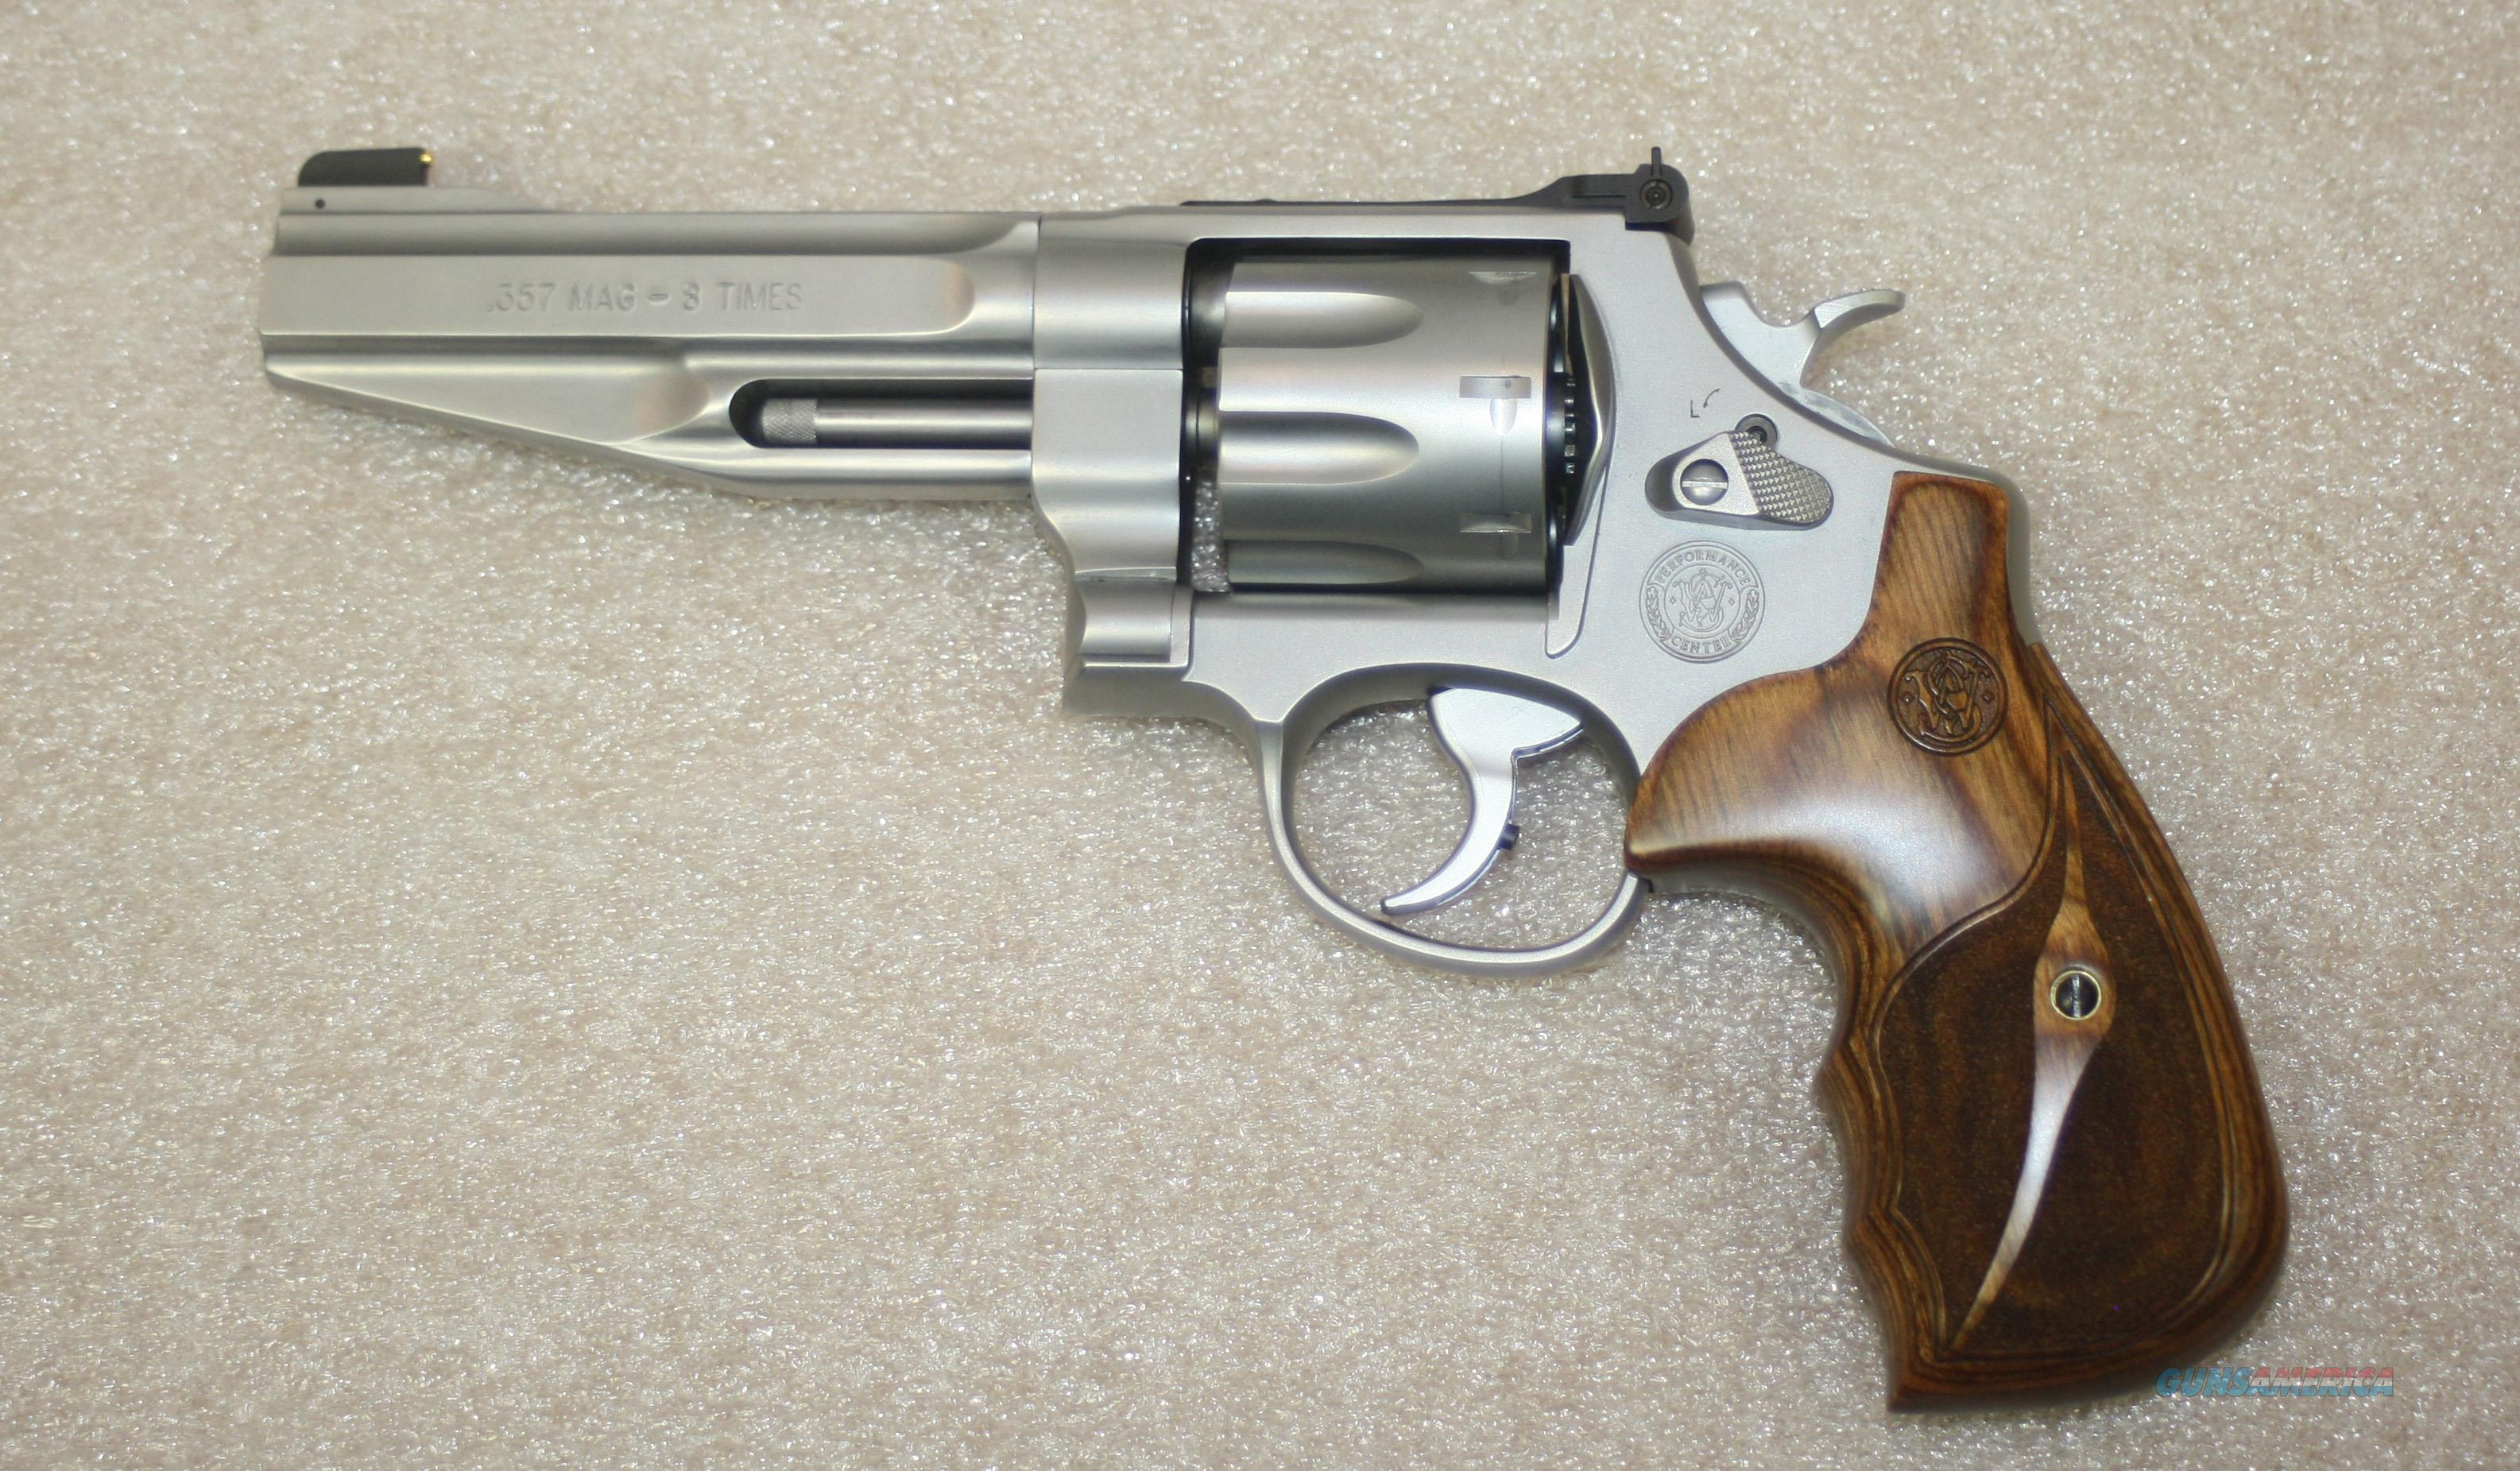 SMITH & WESSON MODEL 627-5 357 MAG #170210  Guns > Pistols > Smith & Wesson Revolvers > Performance Center